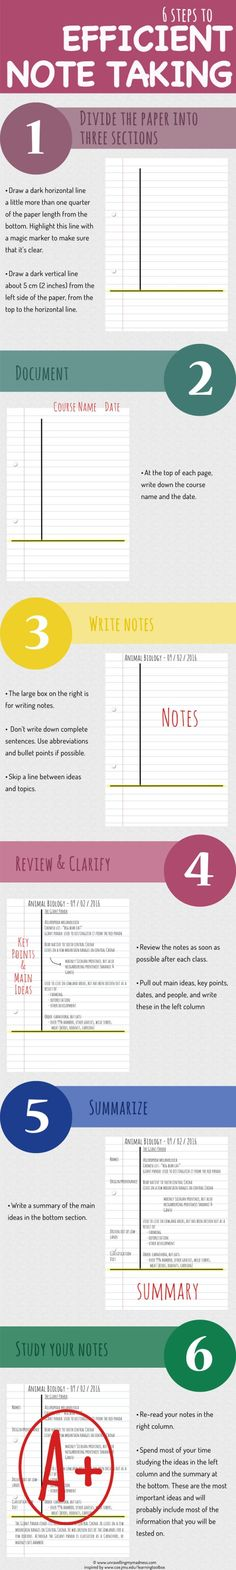 6 steps to efficient note taking. The ultimate guide to getting the most out of your note for your finals.